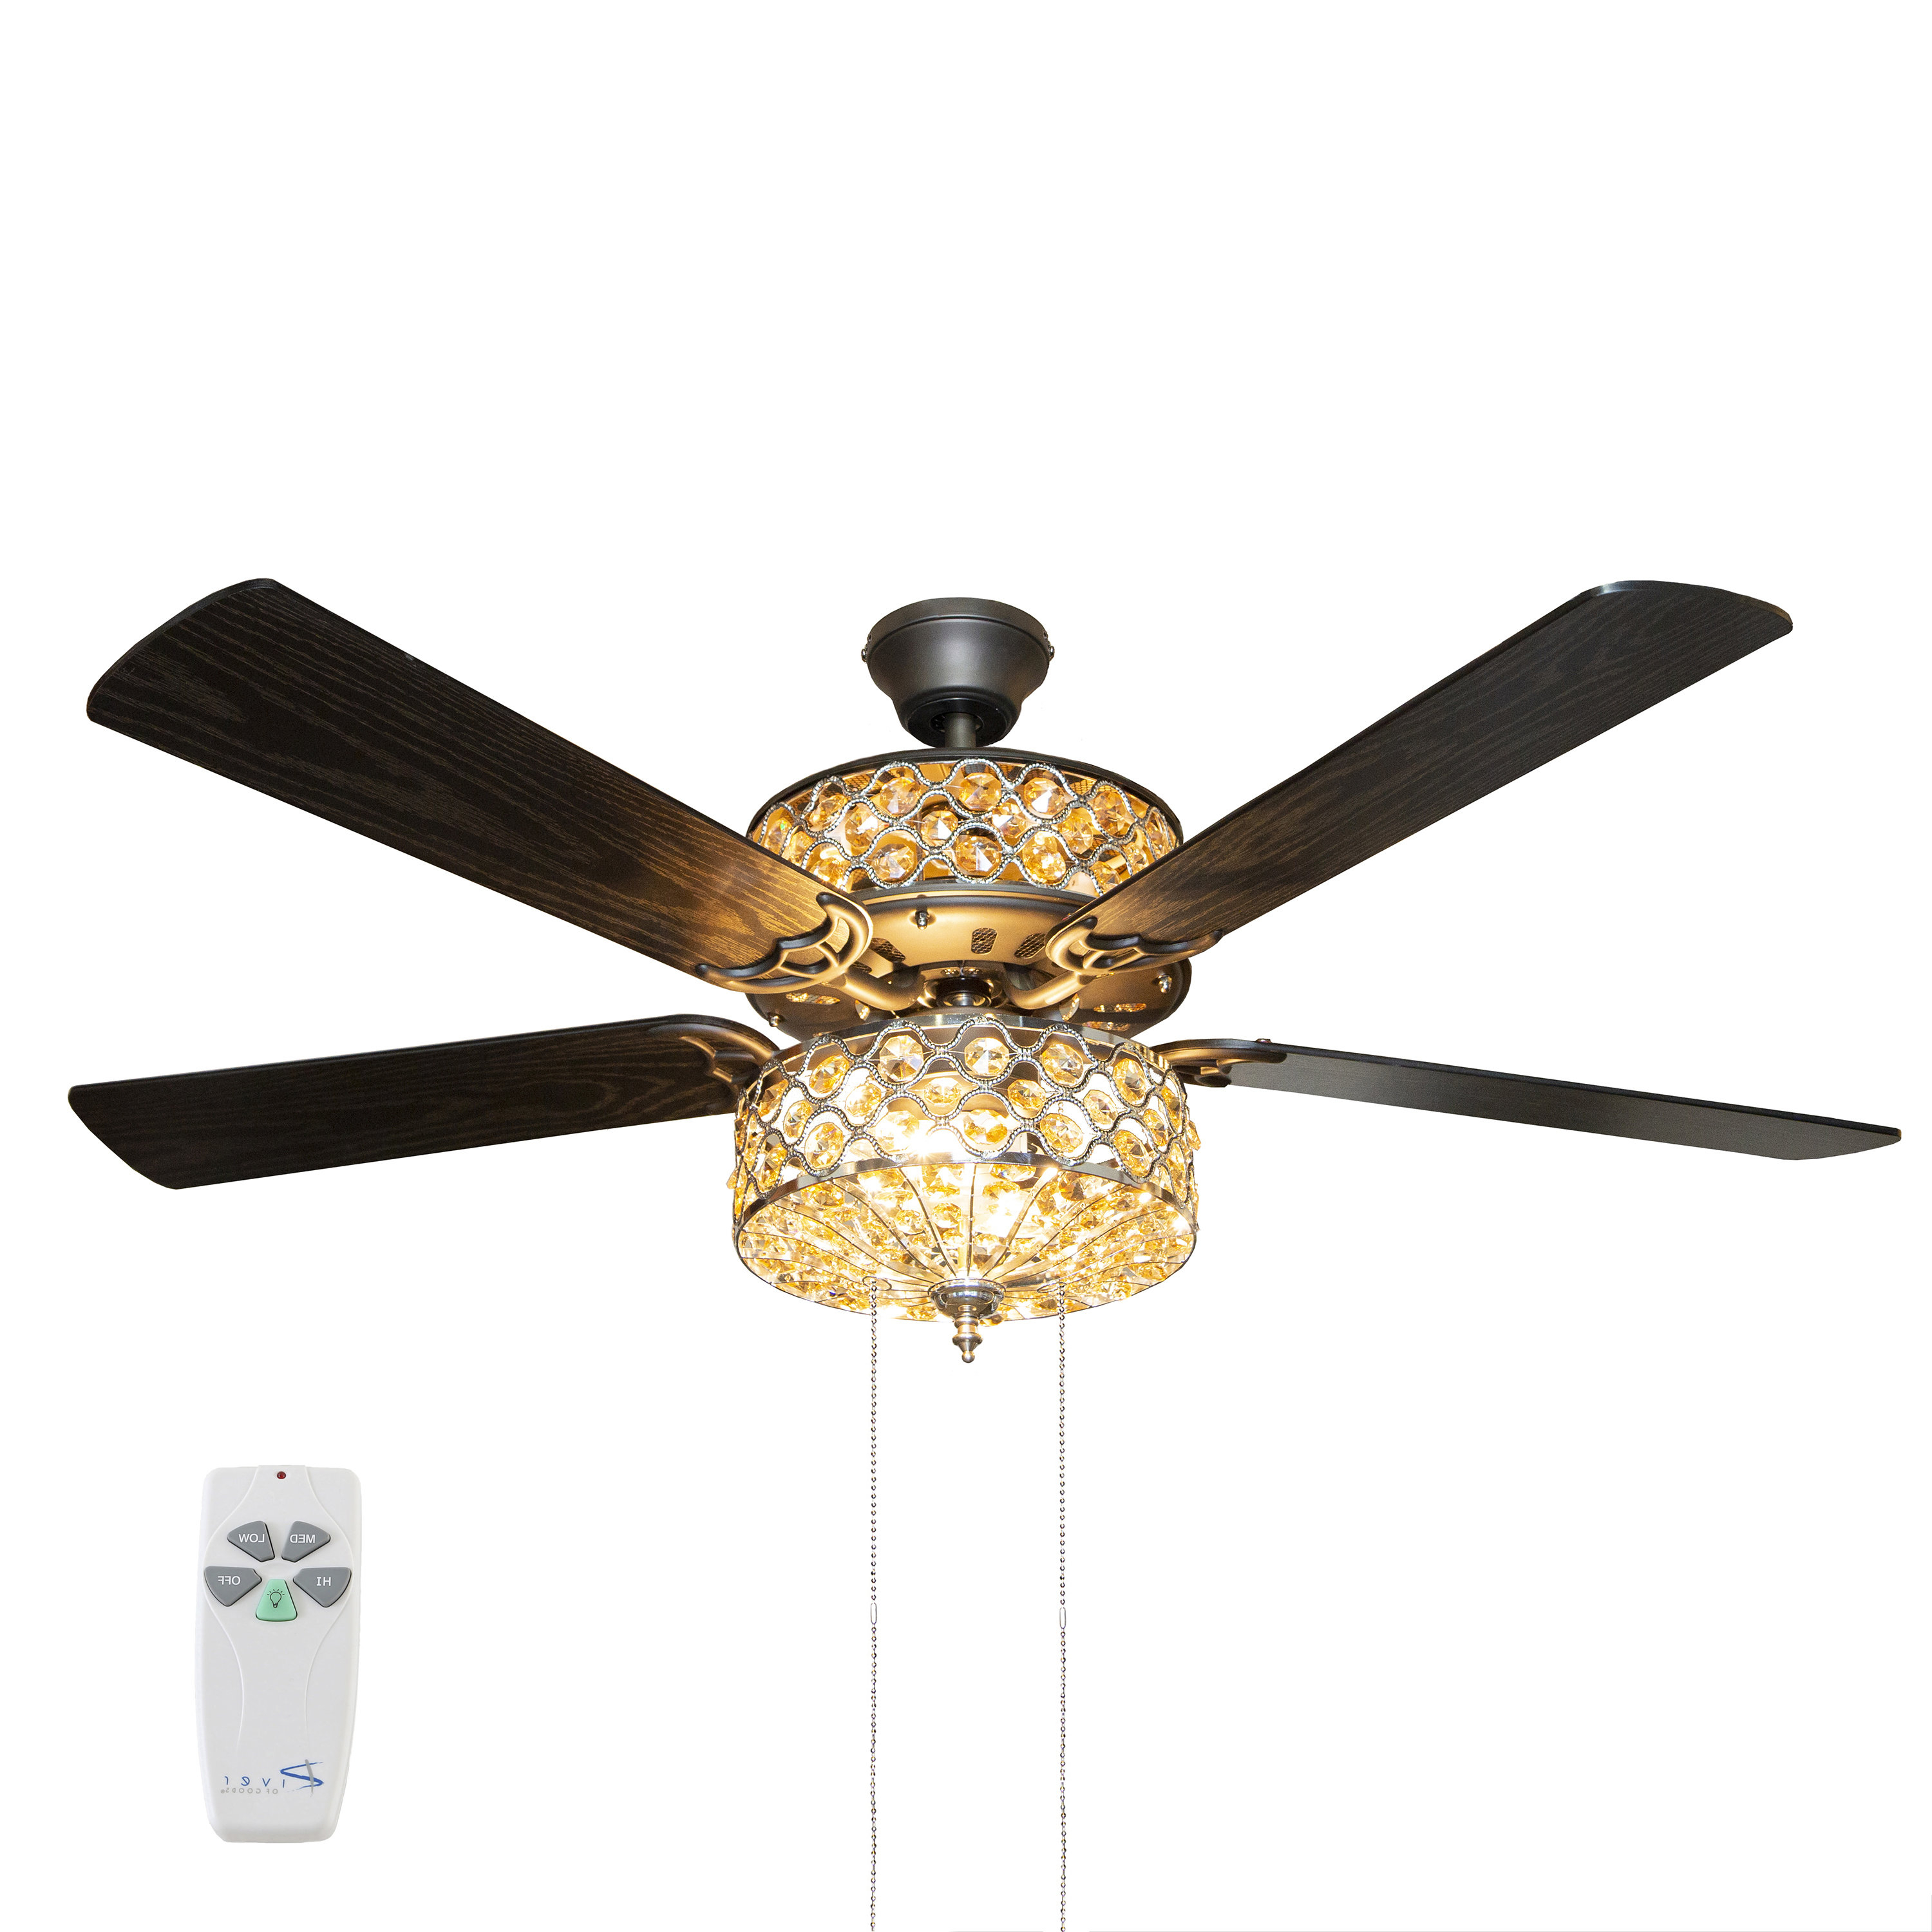 """52"""" Irven 5 Blade Ceiling Fan With Remote, Light Kit Included Throughout Current 5 Blade Ceiling Fans With Remote (View 6 of 20)"""